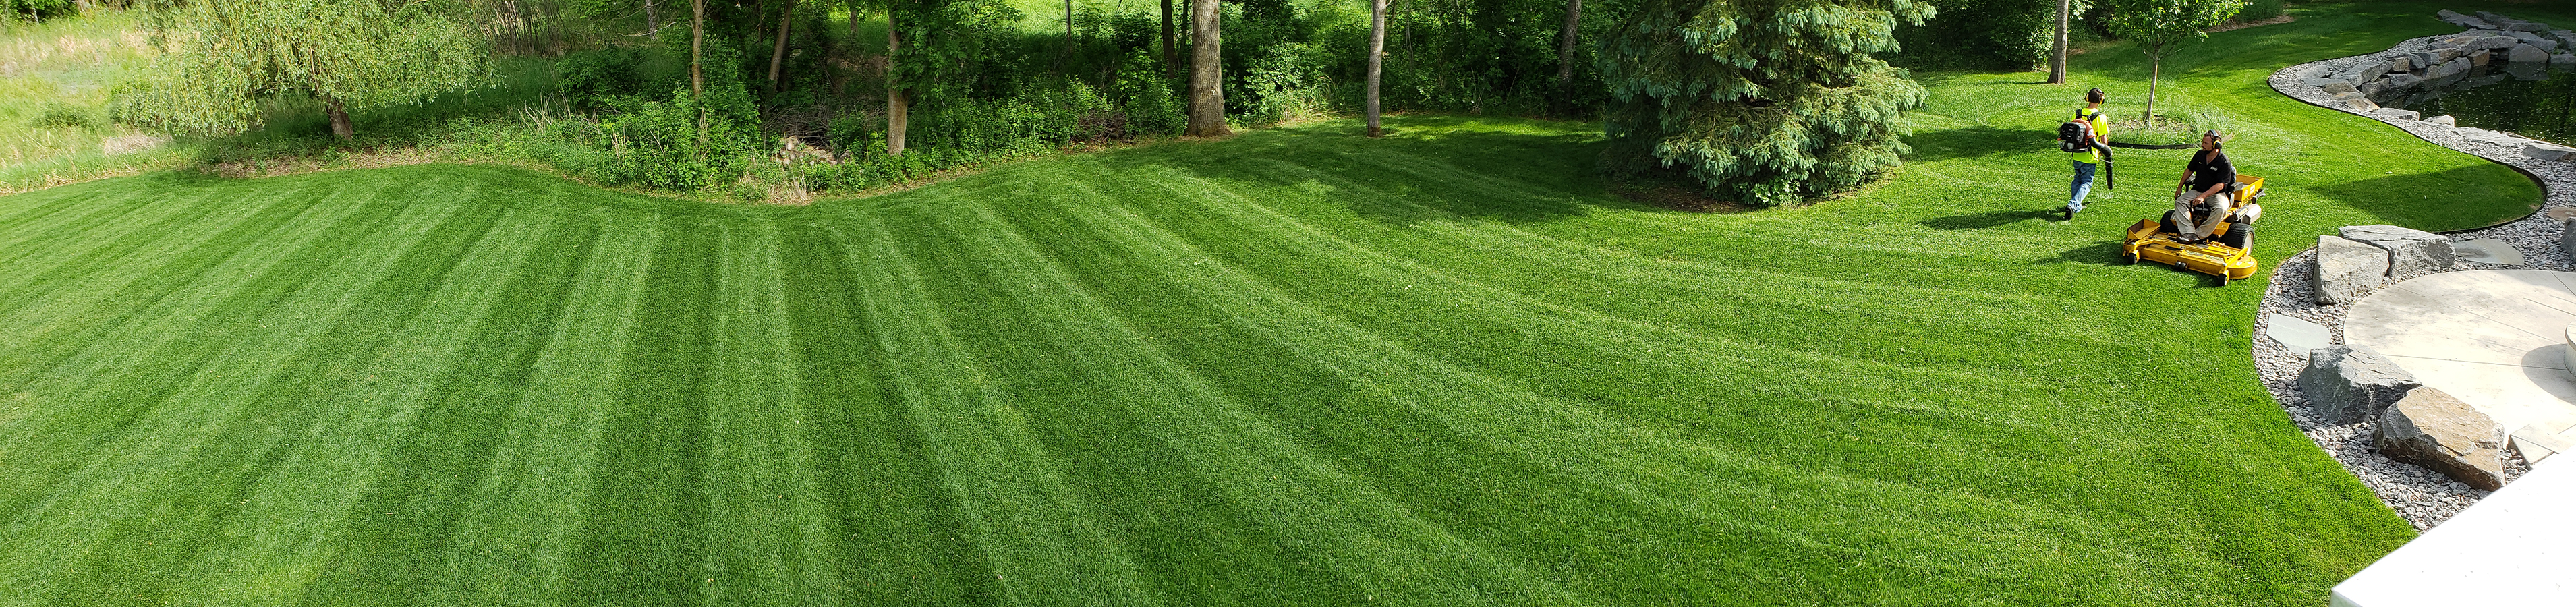 A Lawn Your Family Will Love